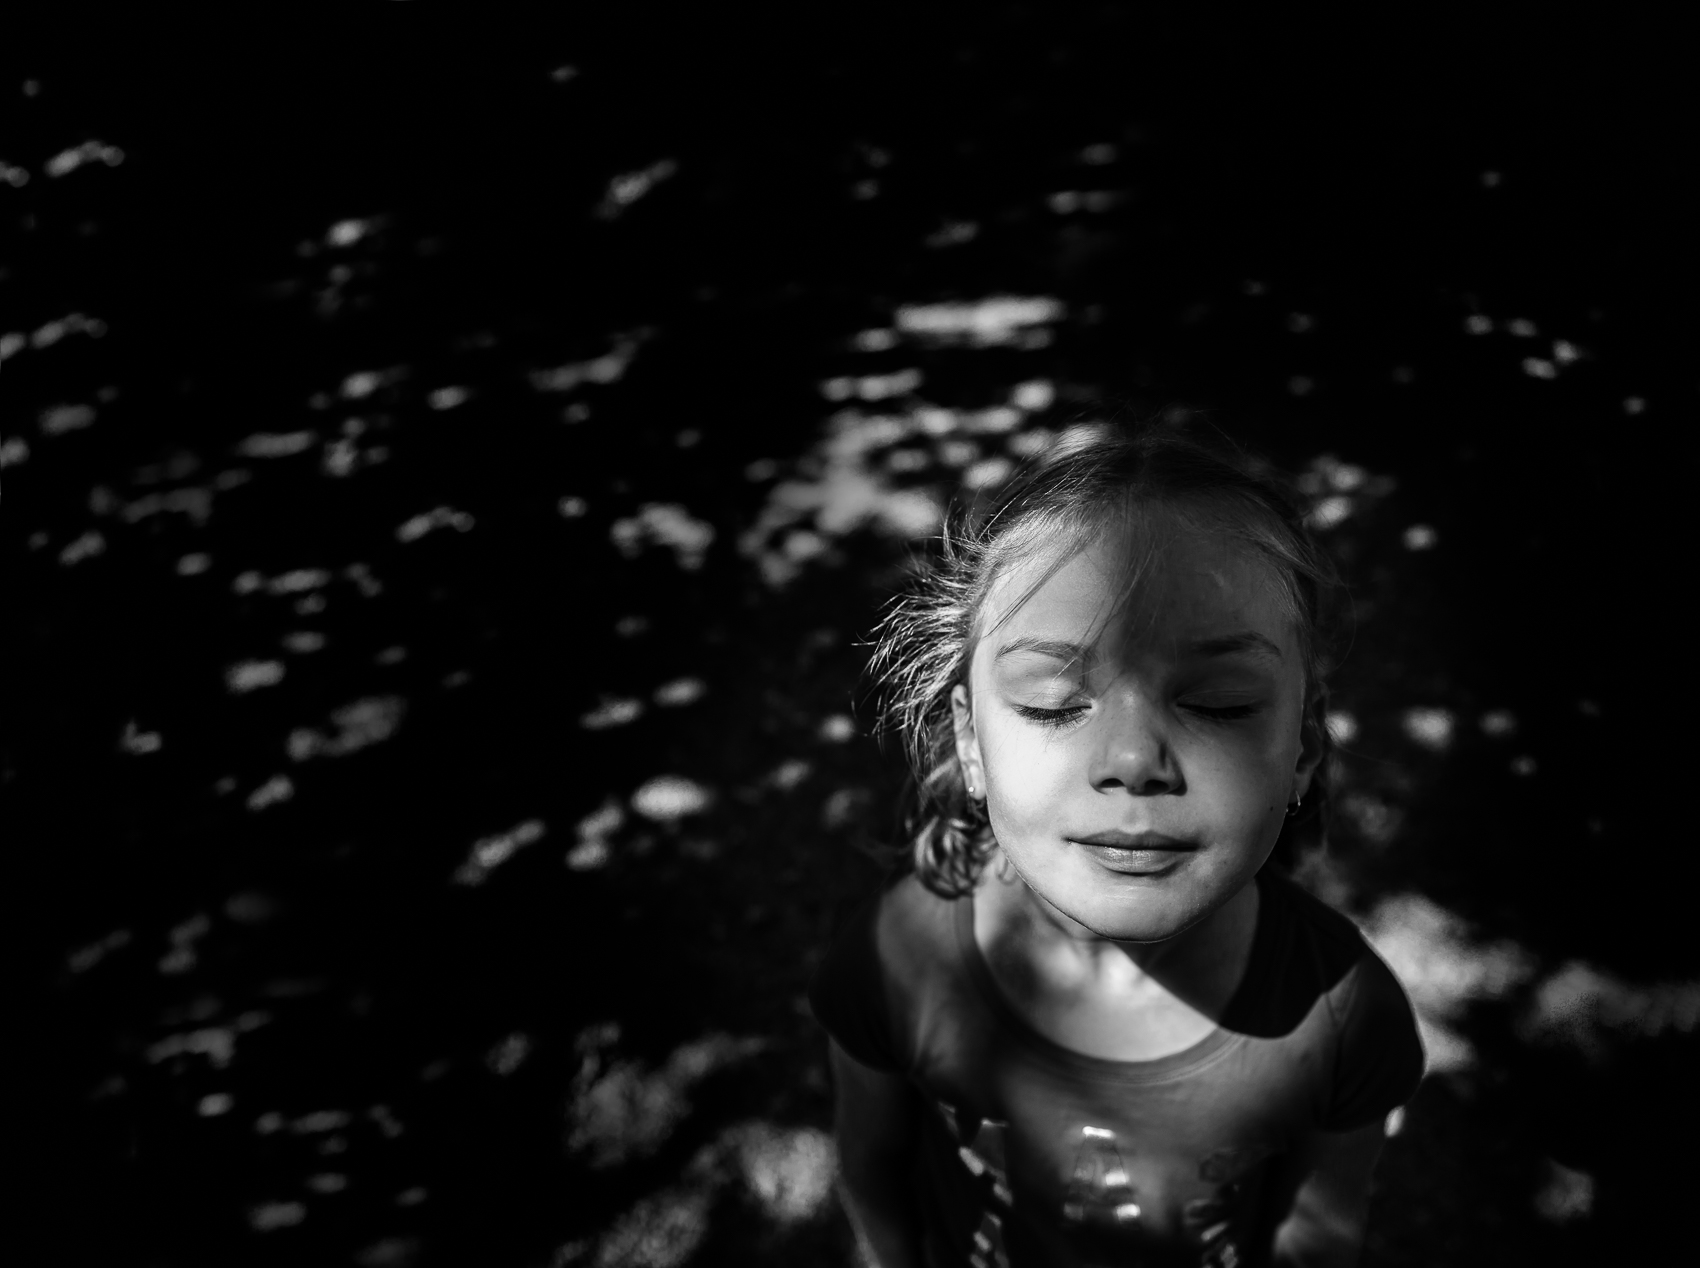 face to the sun, streaming hot and excited, the nerves of the day dissipated in the shade of the playground.